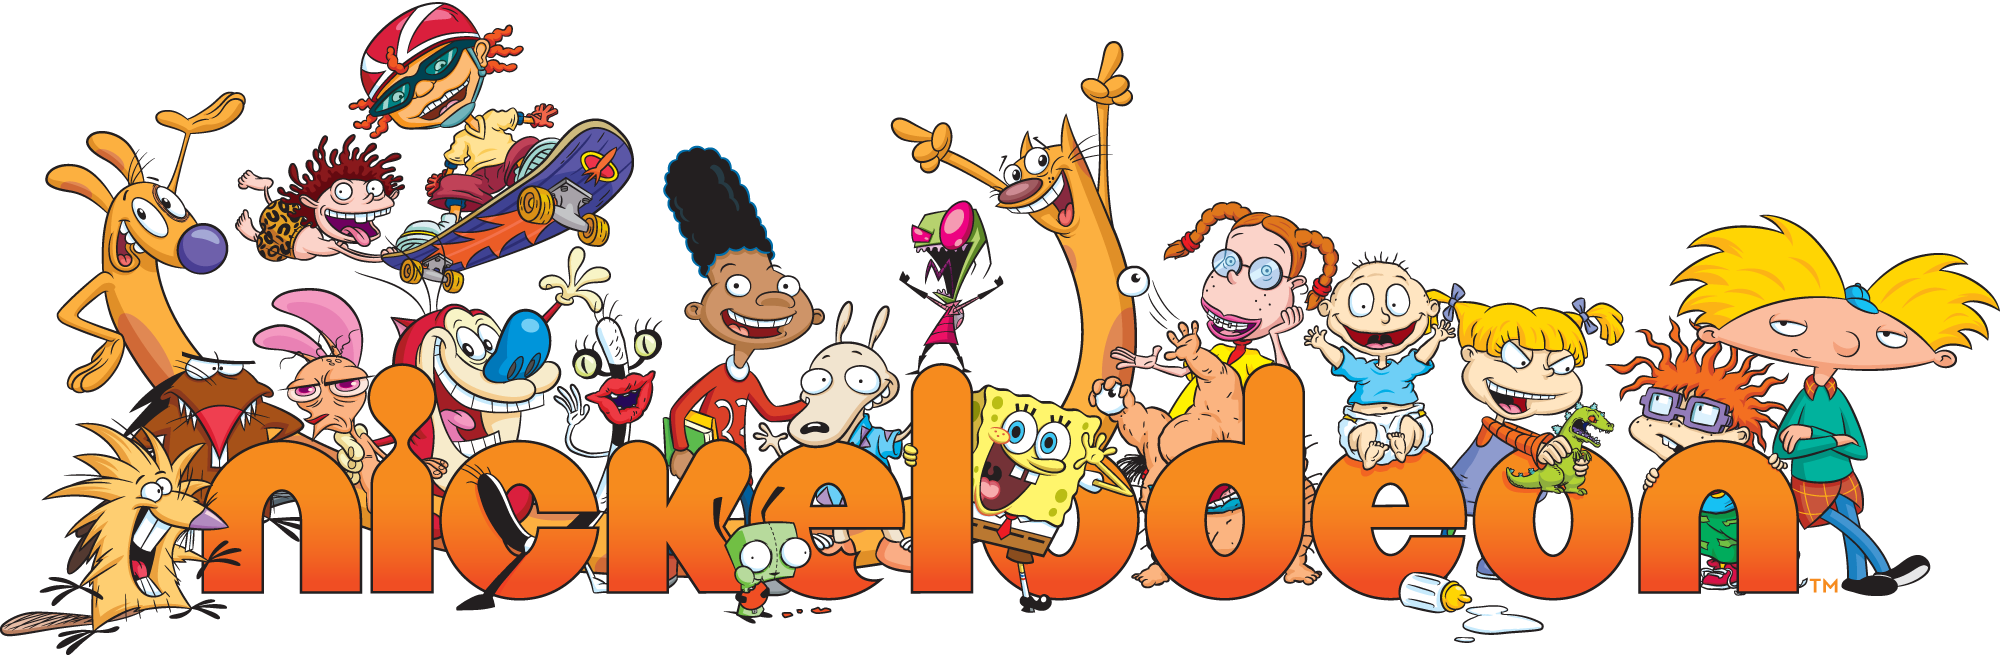 Nickelodeon - Kisscartoon Alternatives